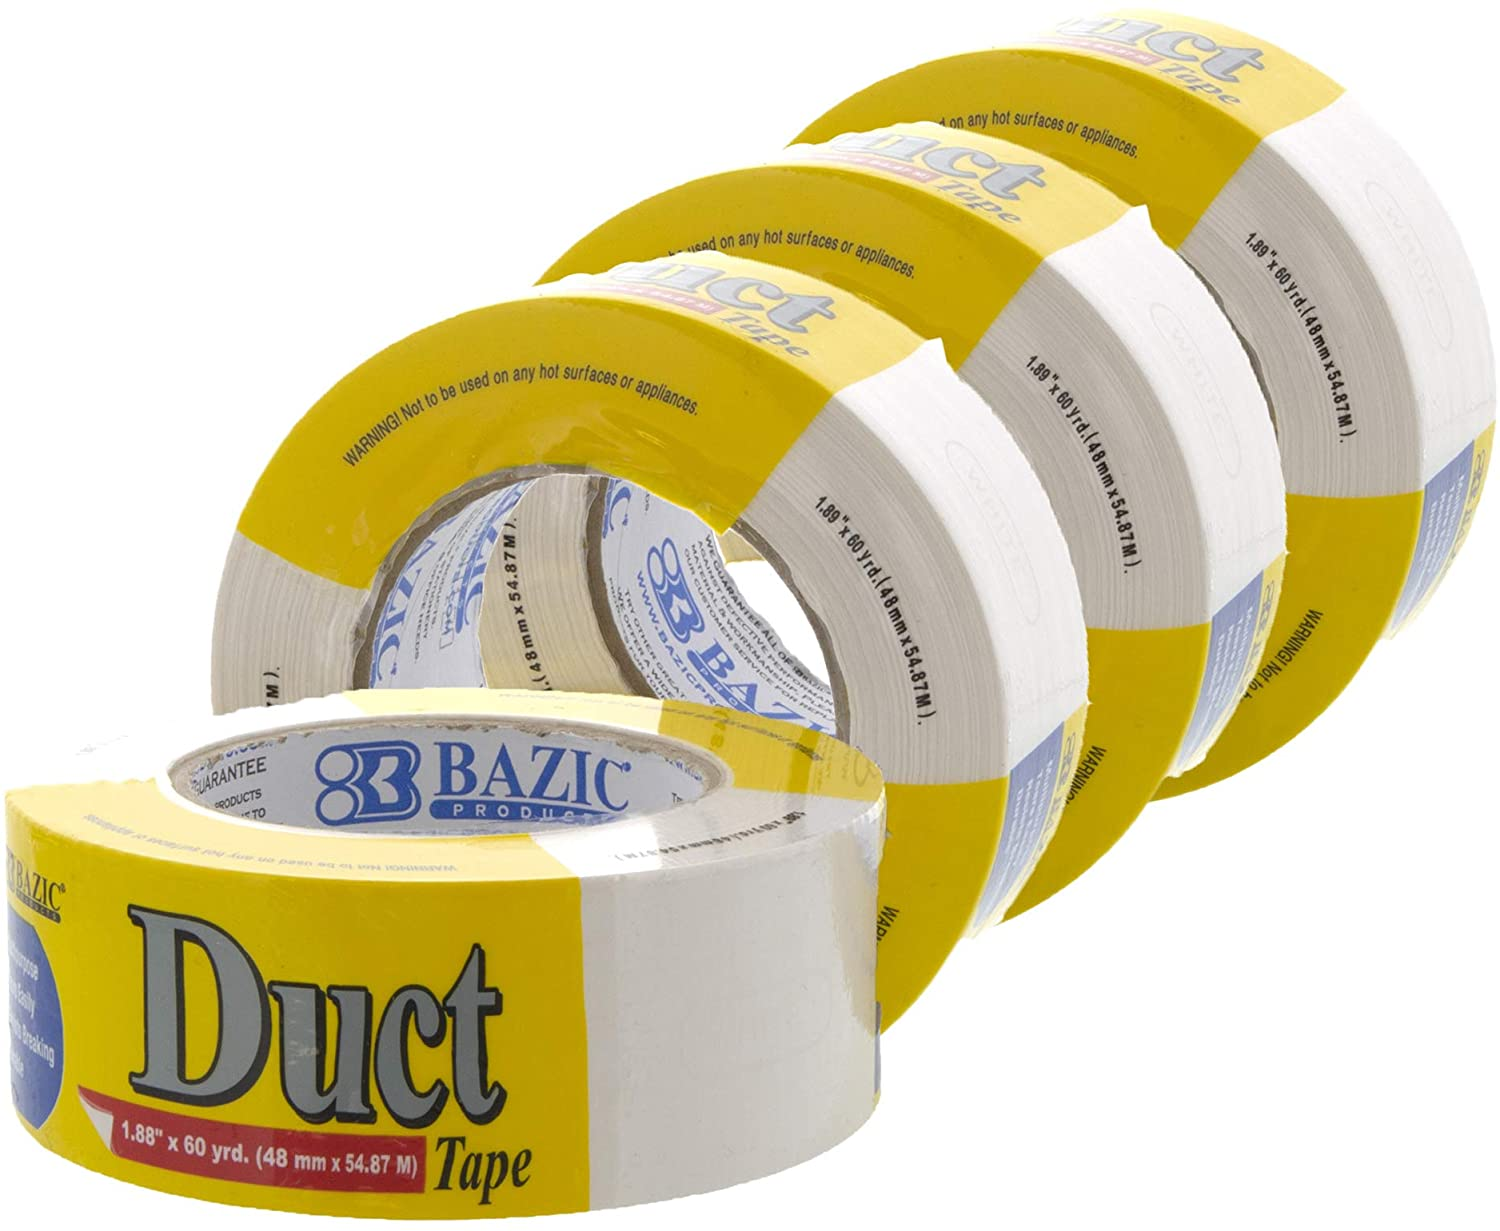 BAZIC 1.88 Inch X 60 Yards White Colored Duct Tape, Wide Multi Use for Home Office Improvement Projects Indoor & Outdoor, Resist Breaking Durable, 4-Pack